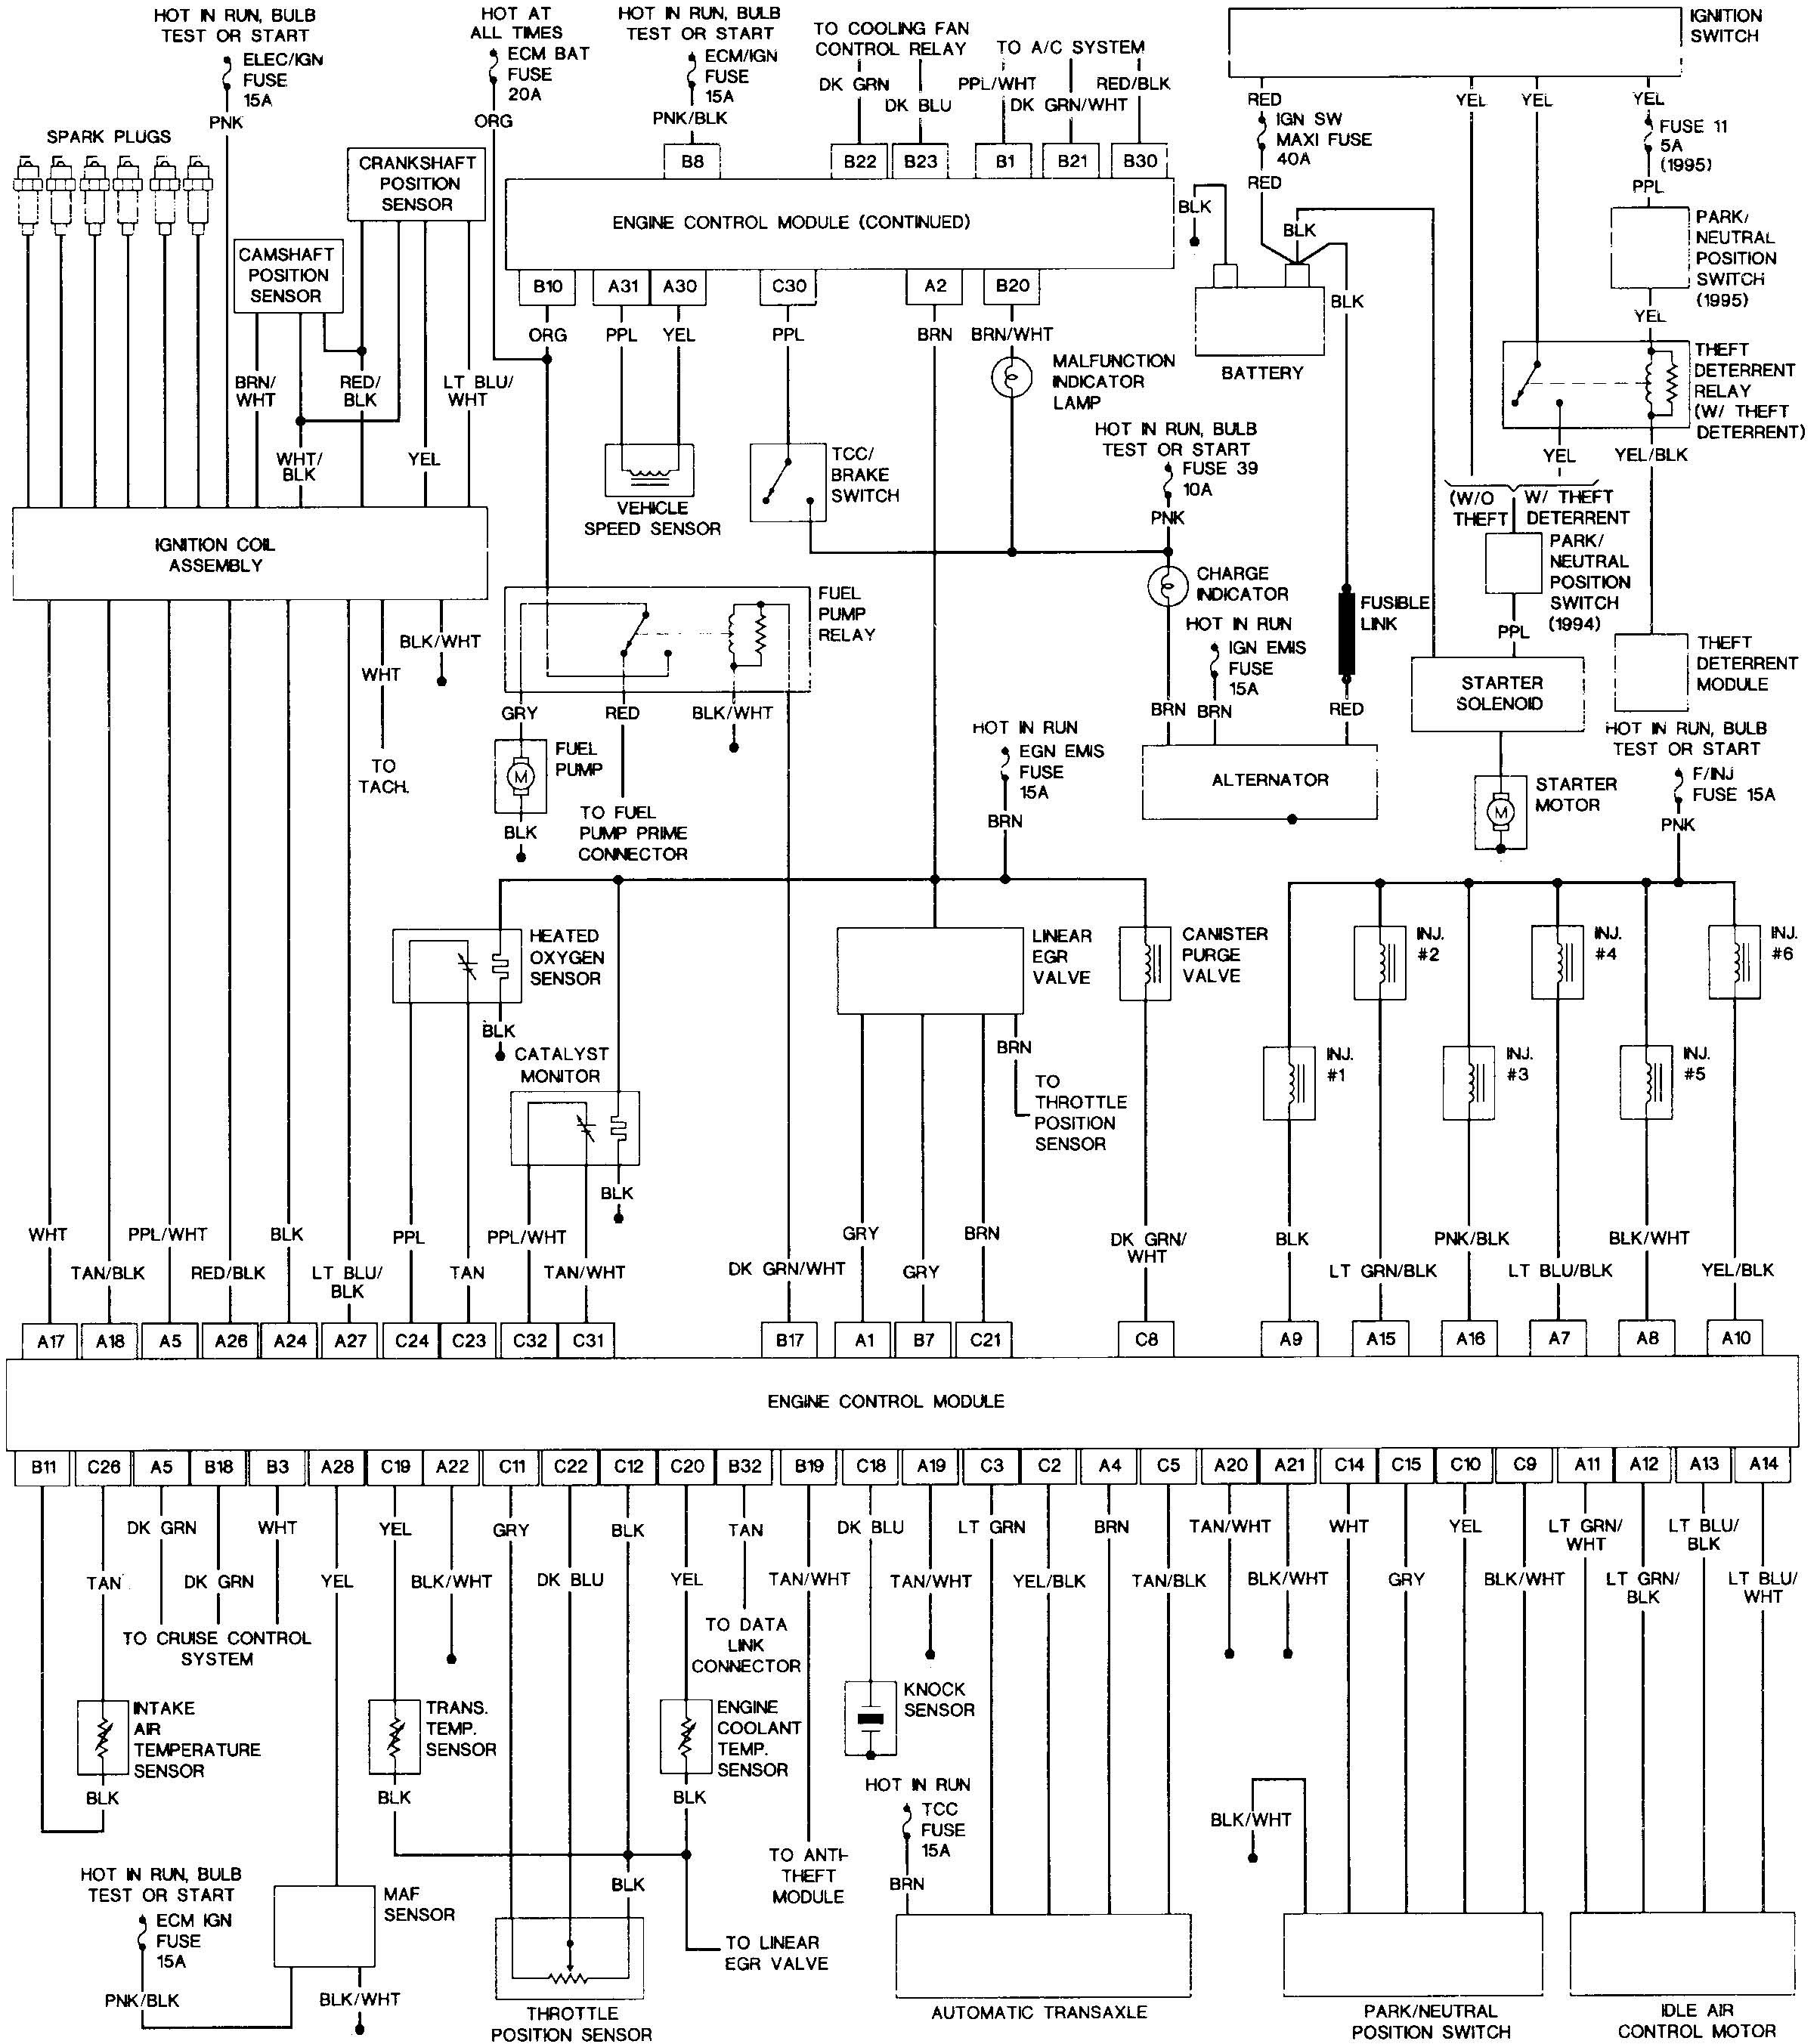 2004 Jeep Grand Cherokee Engine Diagram Kia Spectra Wiring 2000 Radio Elvenlabs Of